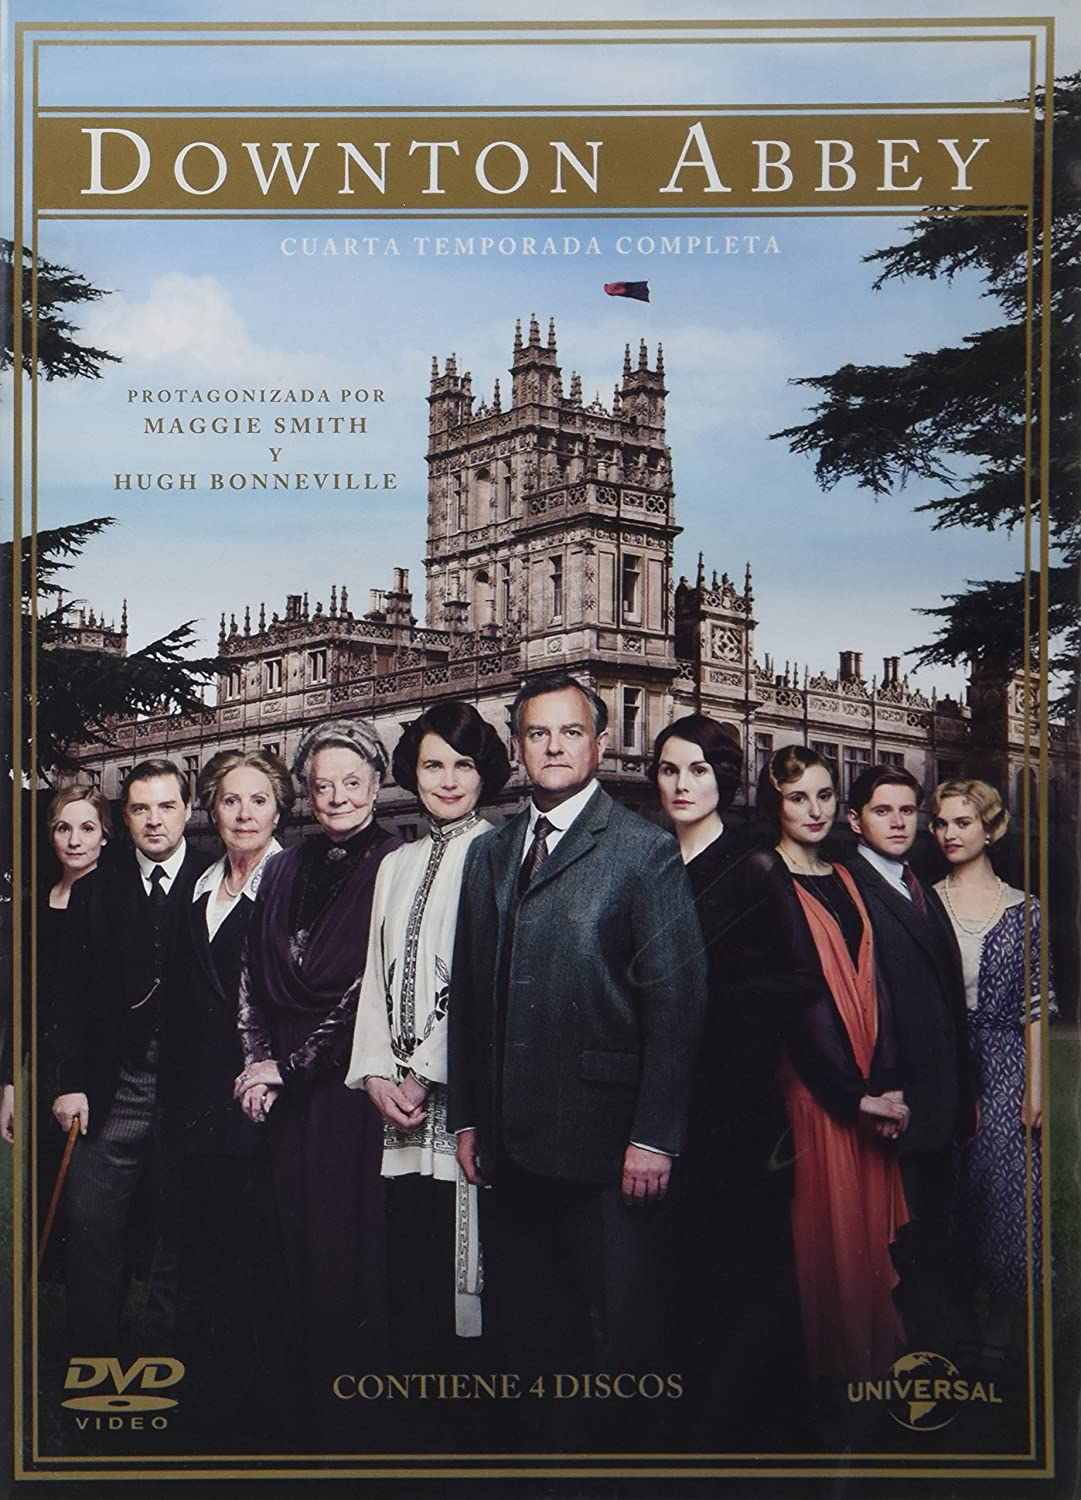 Amazon.com: Downton Abbey Temporada 4 Español Latino: Movies & TV